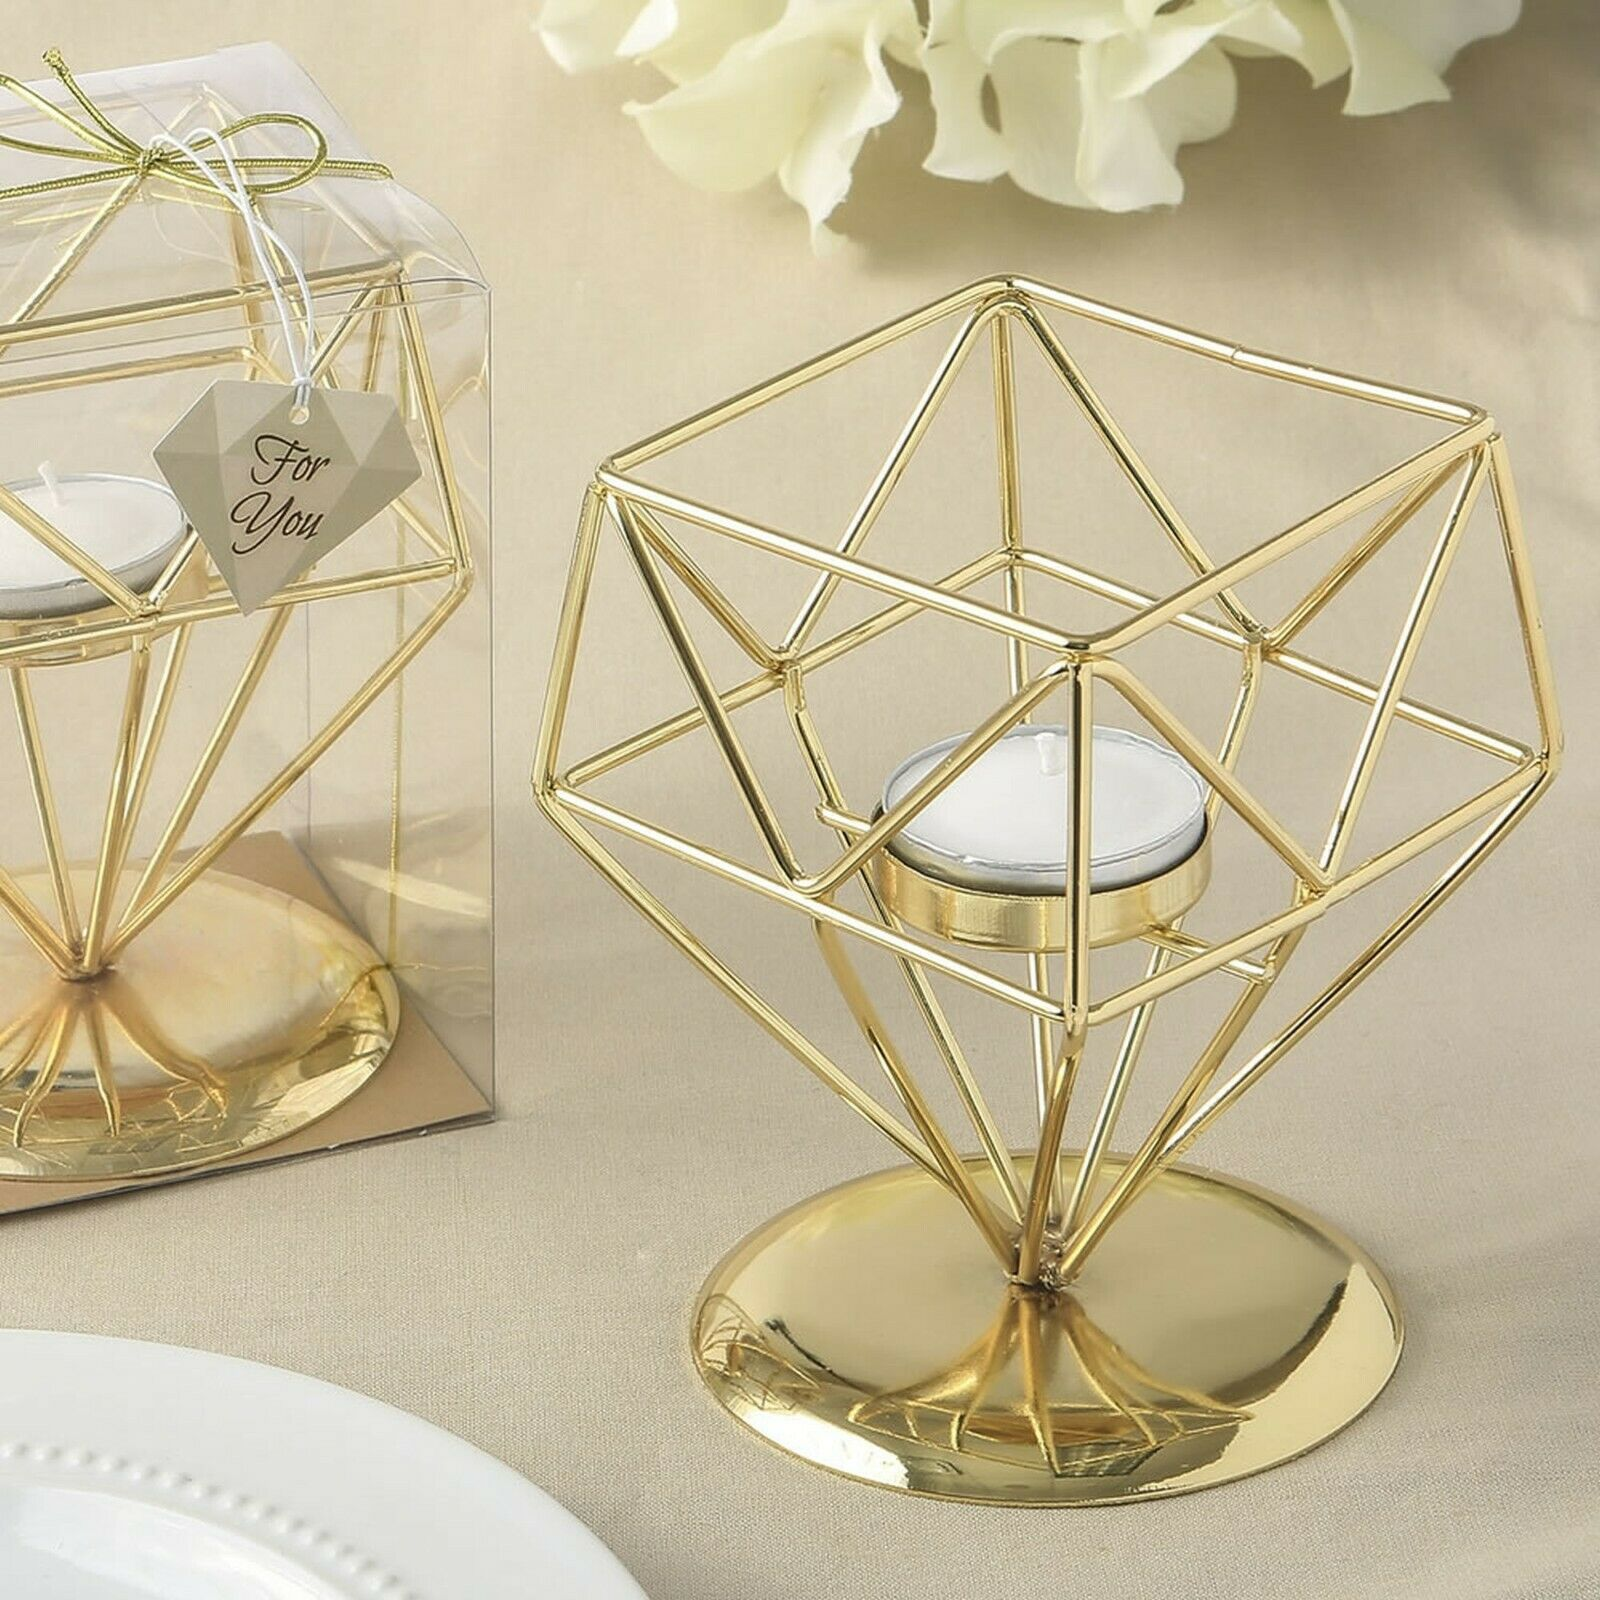 Diamond Gold Geometric Candle Holder Wedding Table Decor Party Favor Mw70053 For Sale Online Ebay